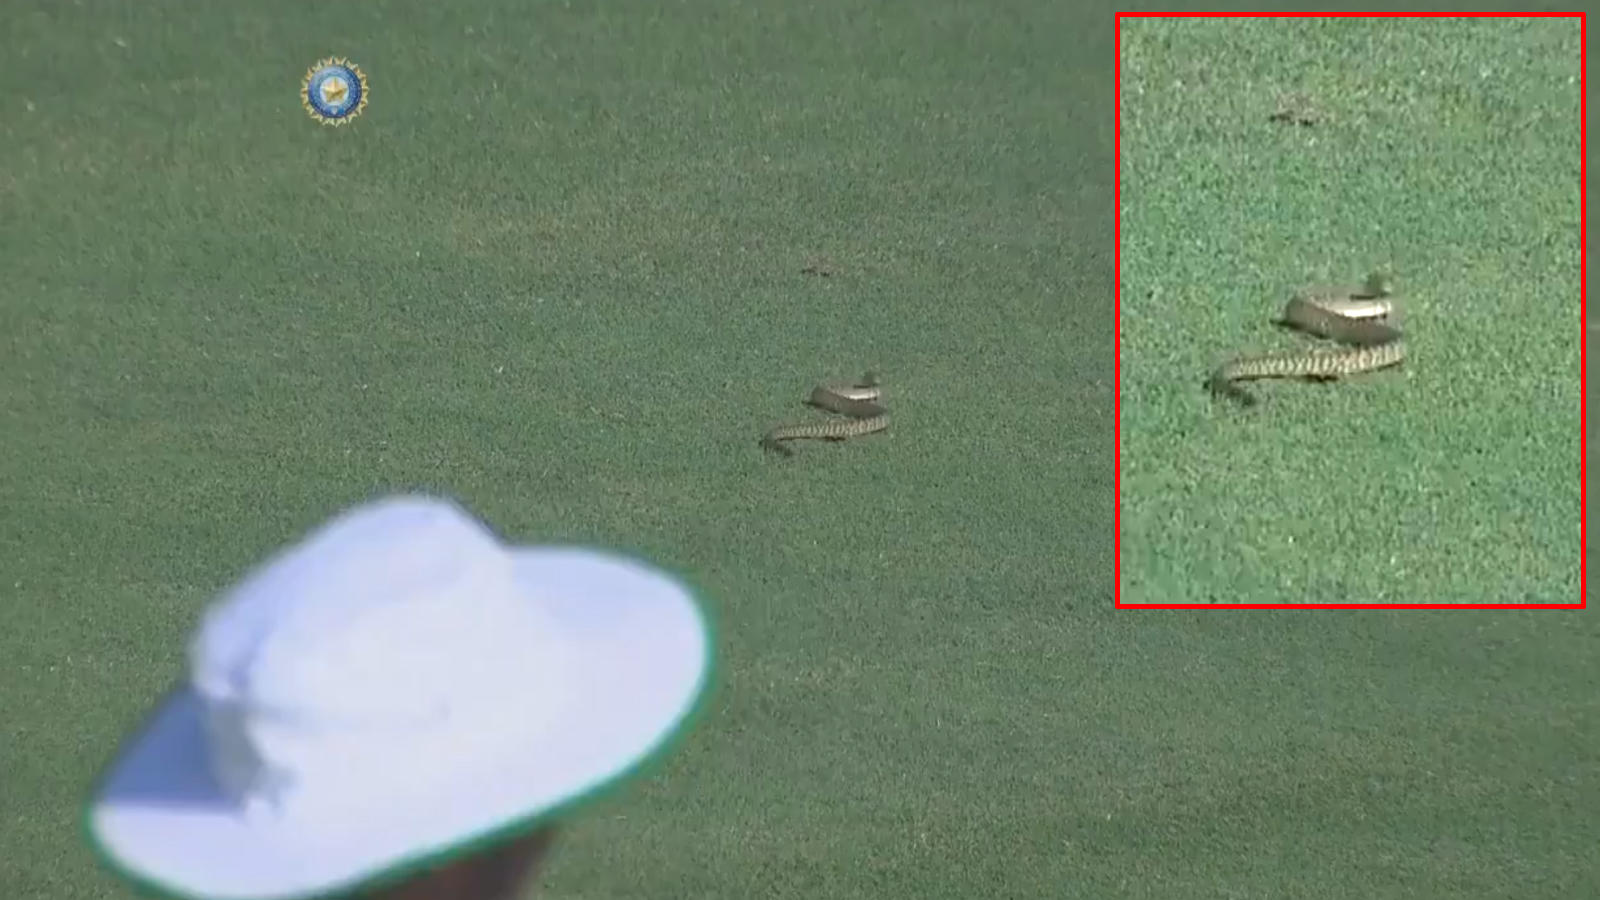 ranji-trophy-2019-snake-enters-ground-delays-start-of-match